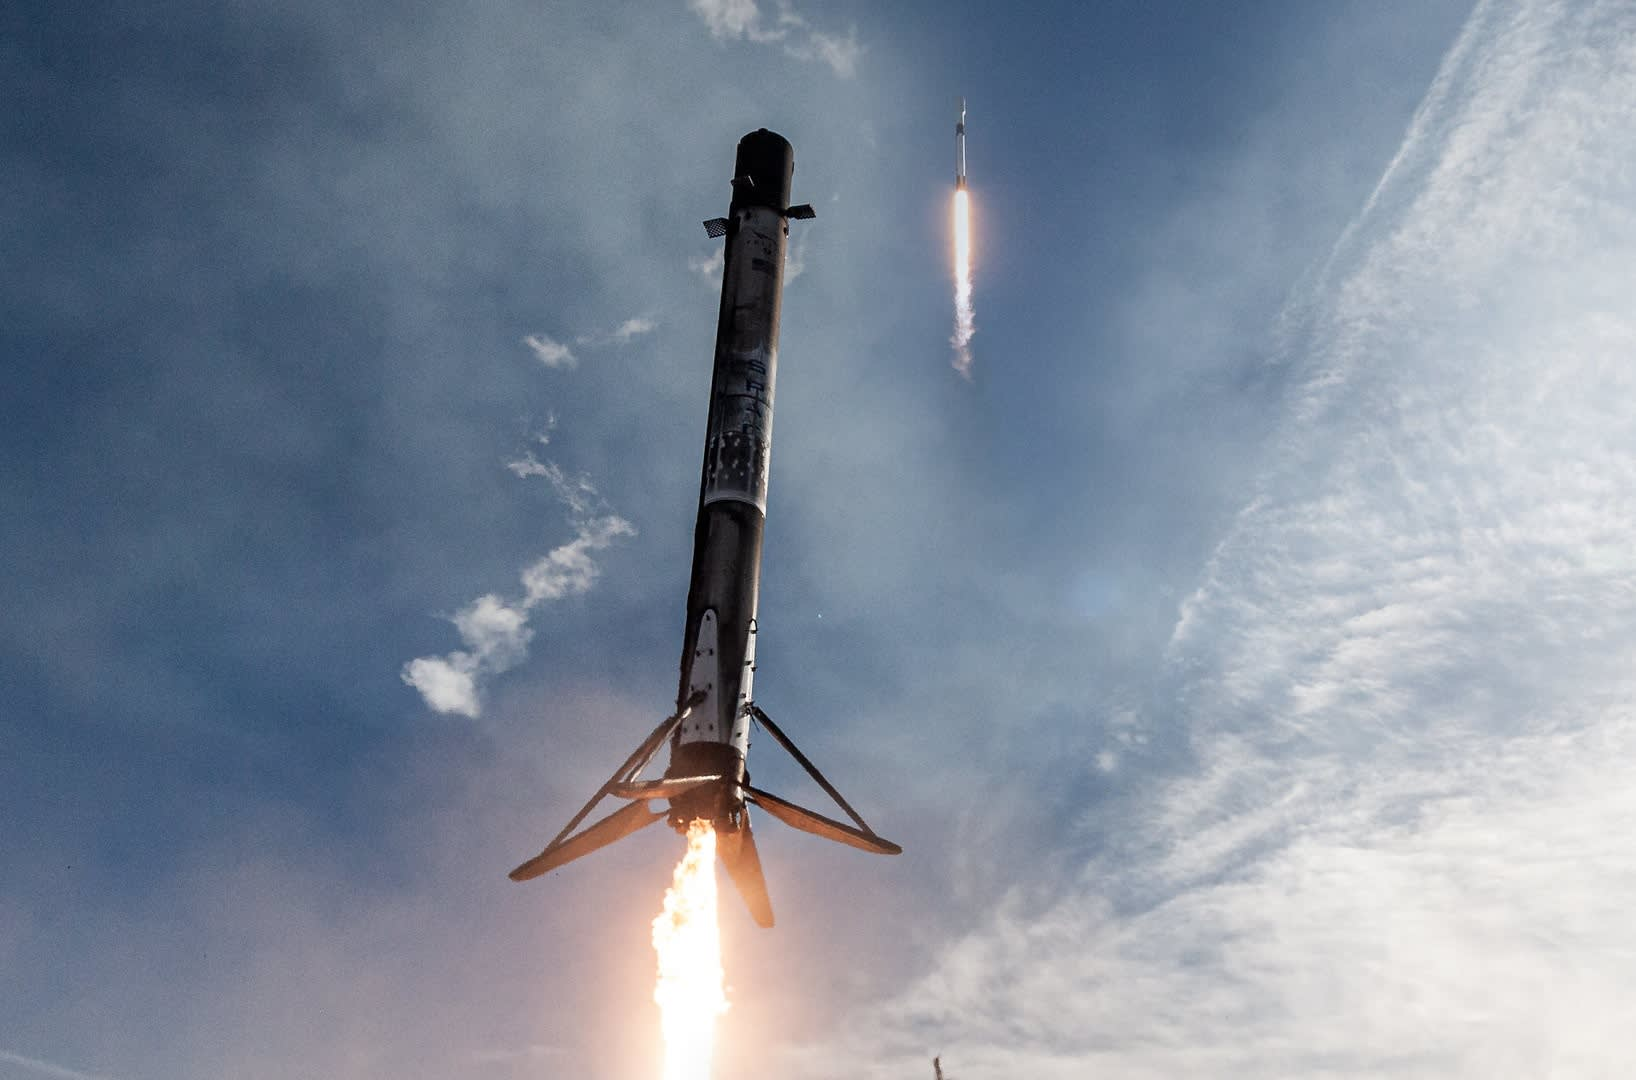 Space Force clears SpaceX to launch reused rockets for military missions - CNBC